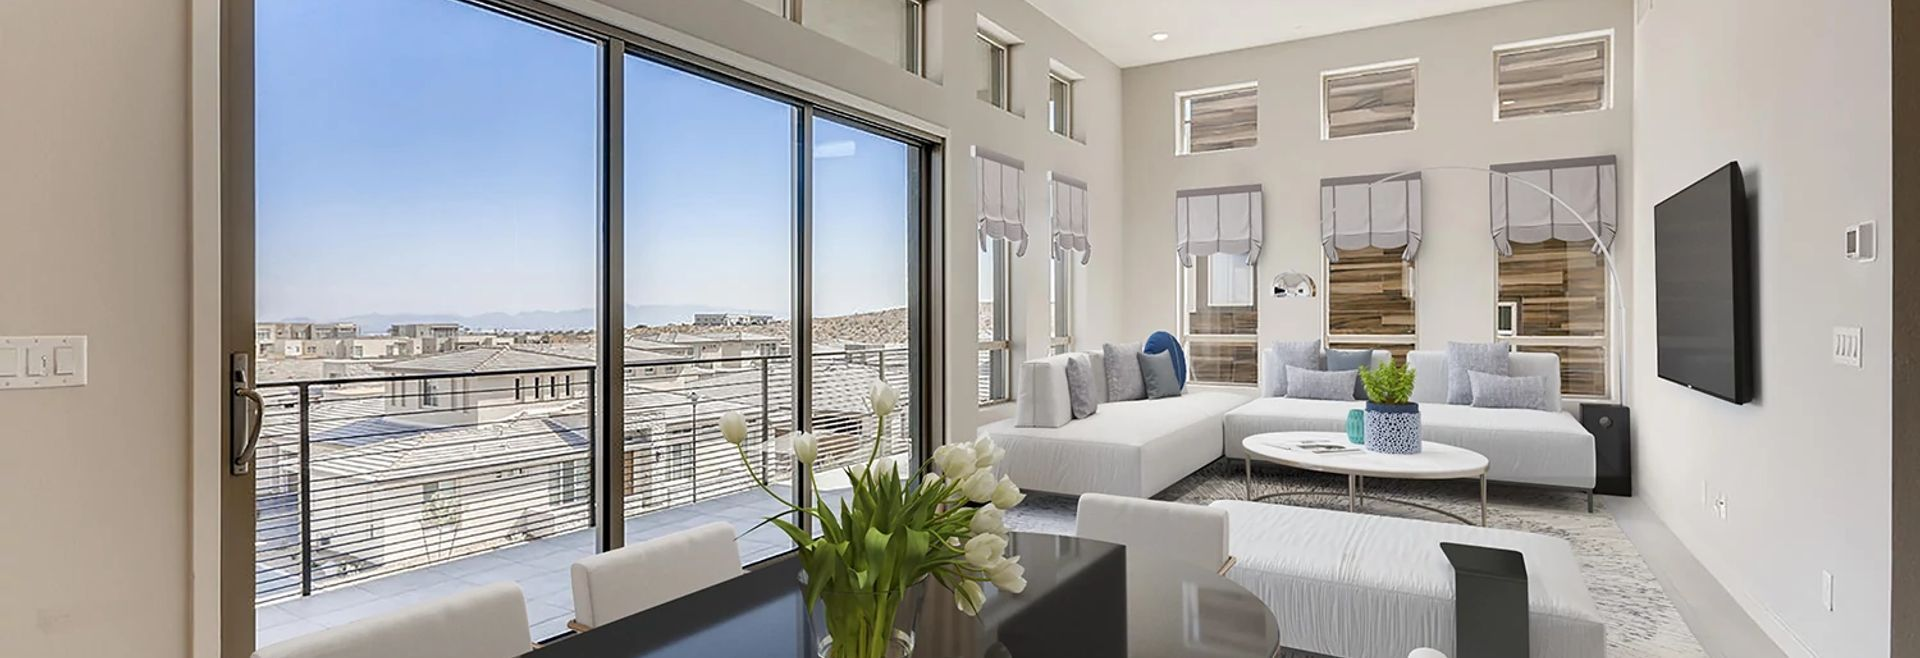 Trilogy Summerlin Summit Dining & Great Room:Summit Virtually Staged Dining & Great Room